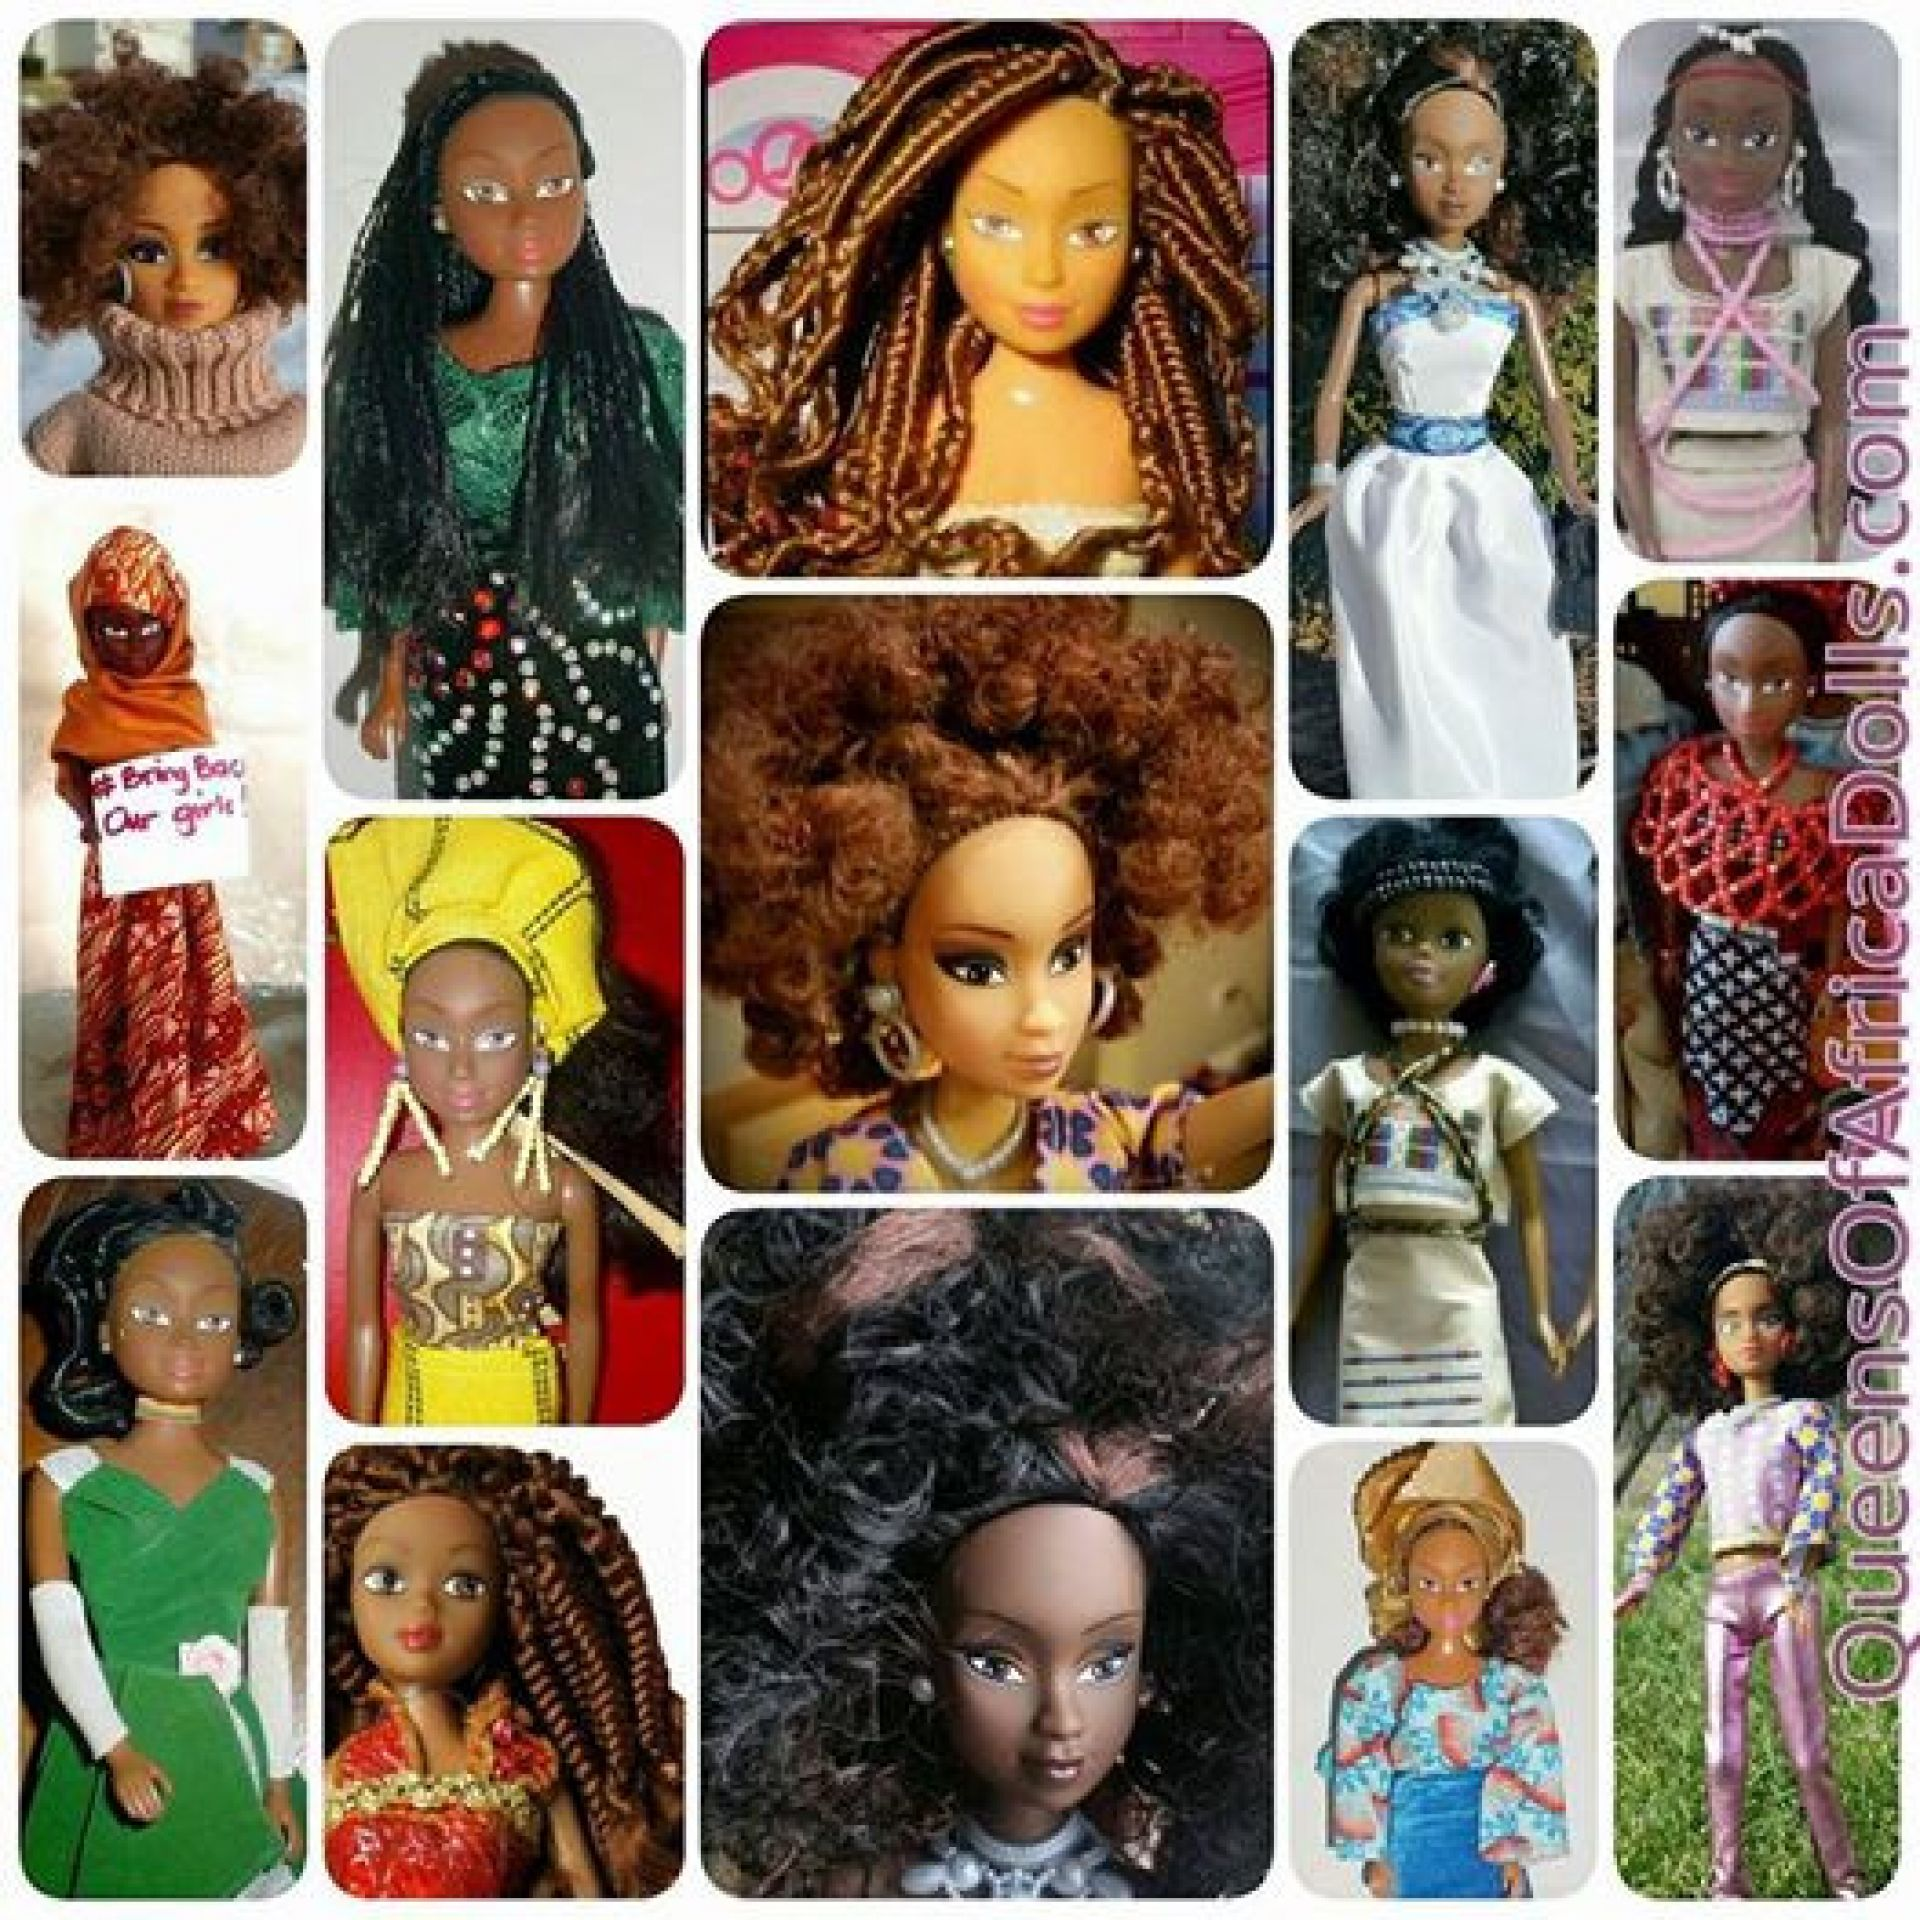 buzzercast com - Queens of Africa: The Dolls That are Taking